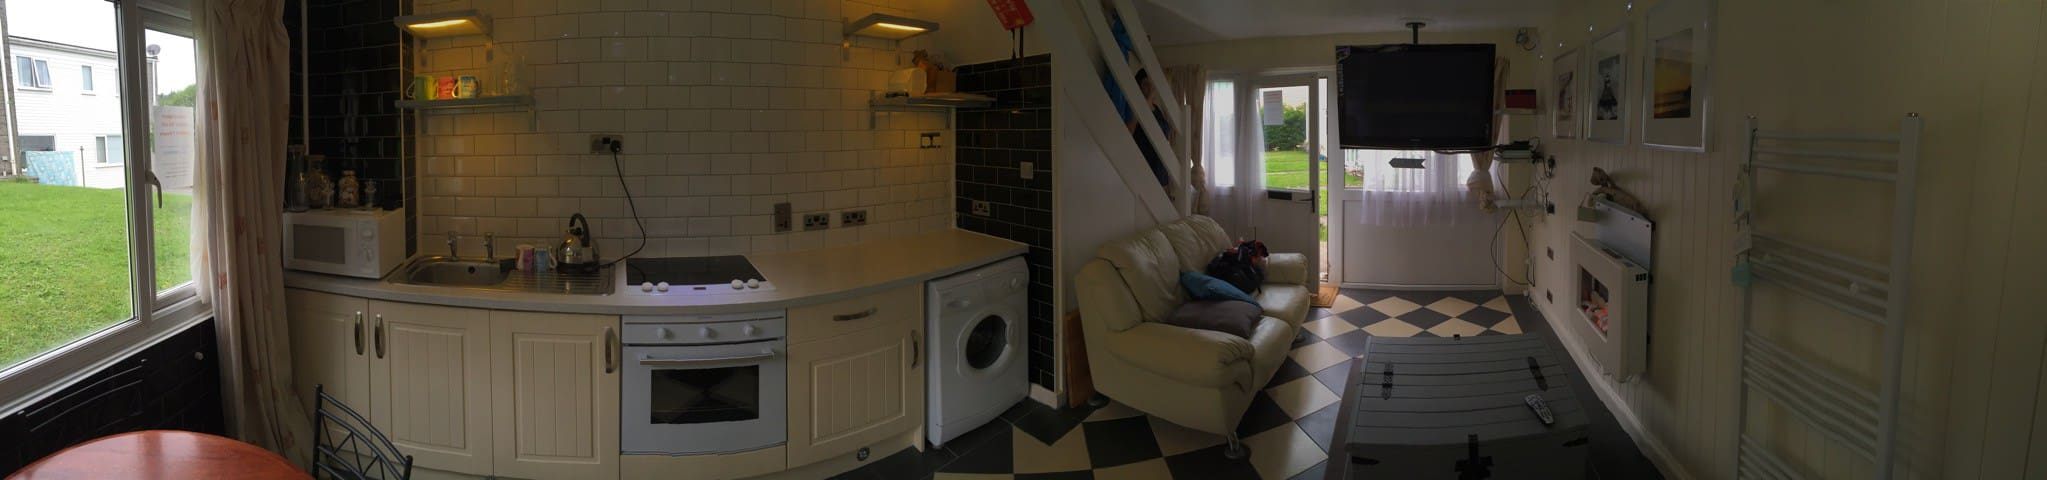 Holiday Chalet in Freshwater East, Number 22